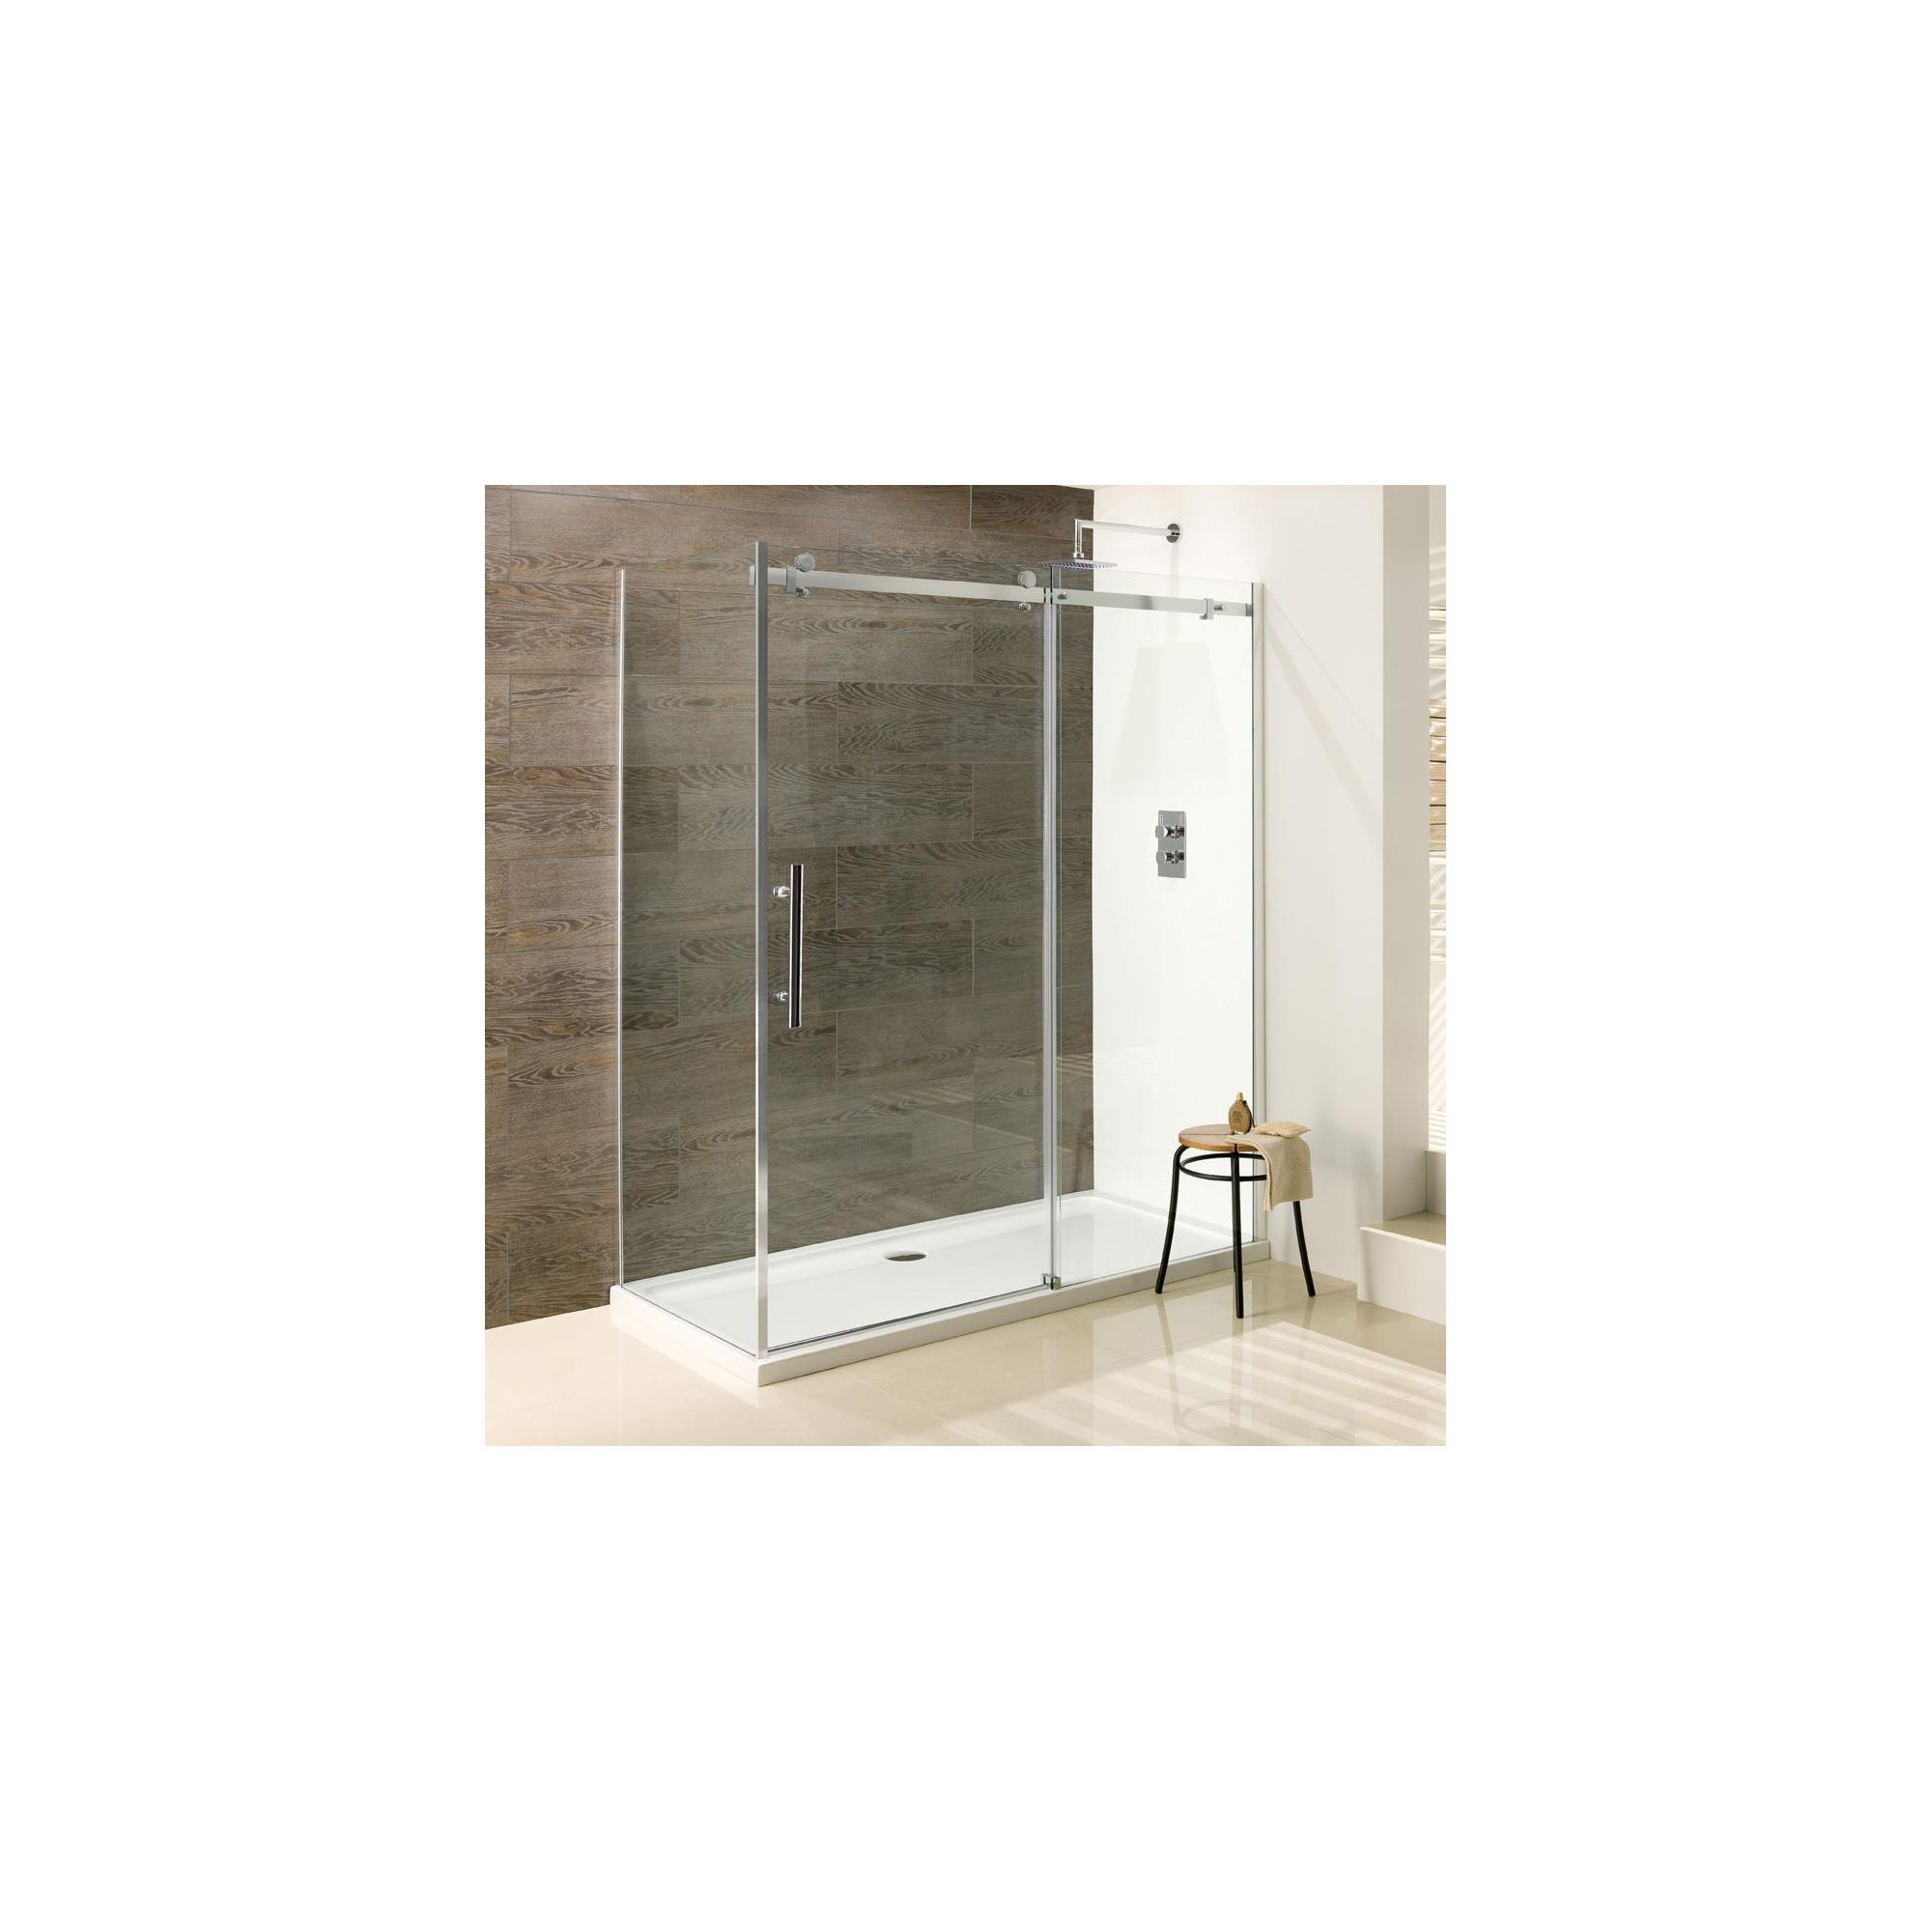 Duchy Deluxe Silver Sliding Door Shower Enclosure with Side Panel 1700mm x 900mm (Complete with Tray), 10mm Glass at Tesco Direct